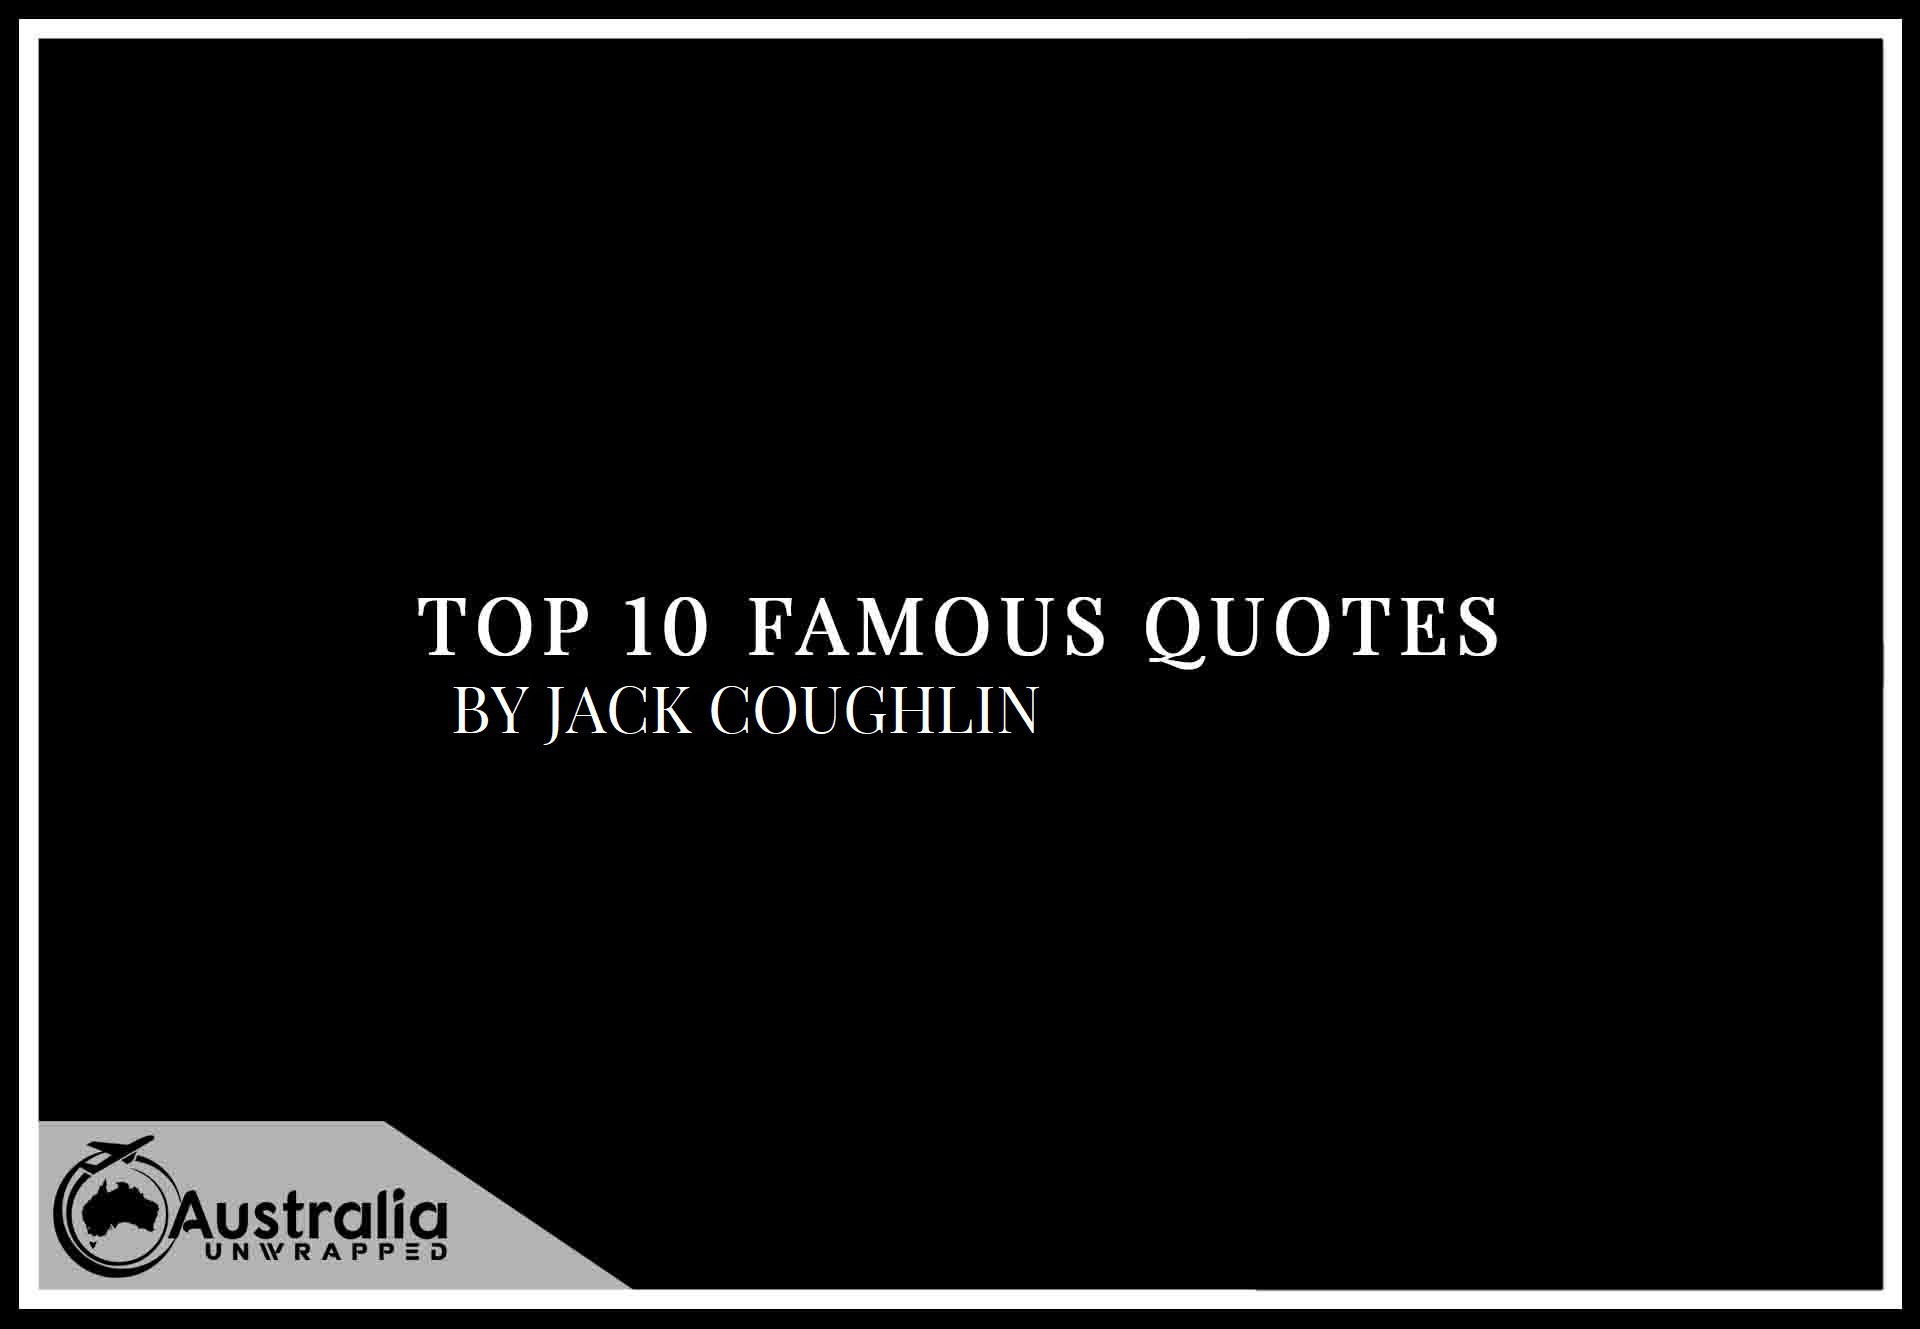 Top 10 Famous Quotes by Author Jack Coughlin